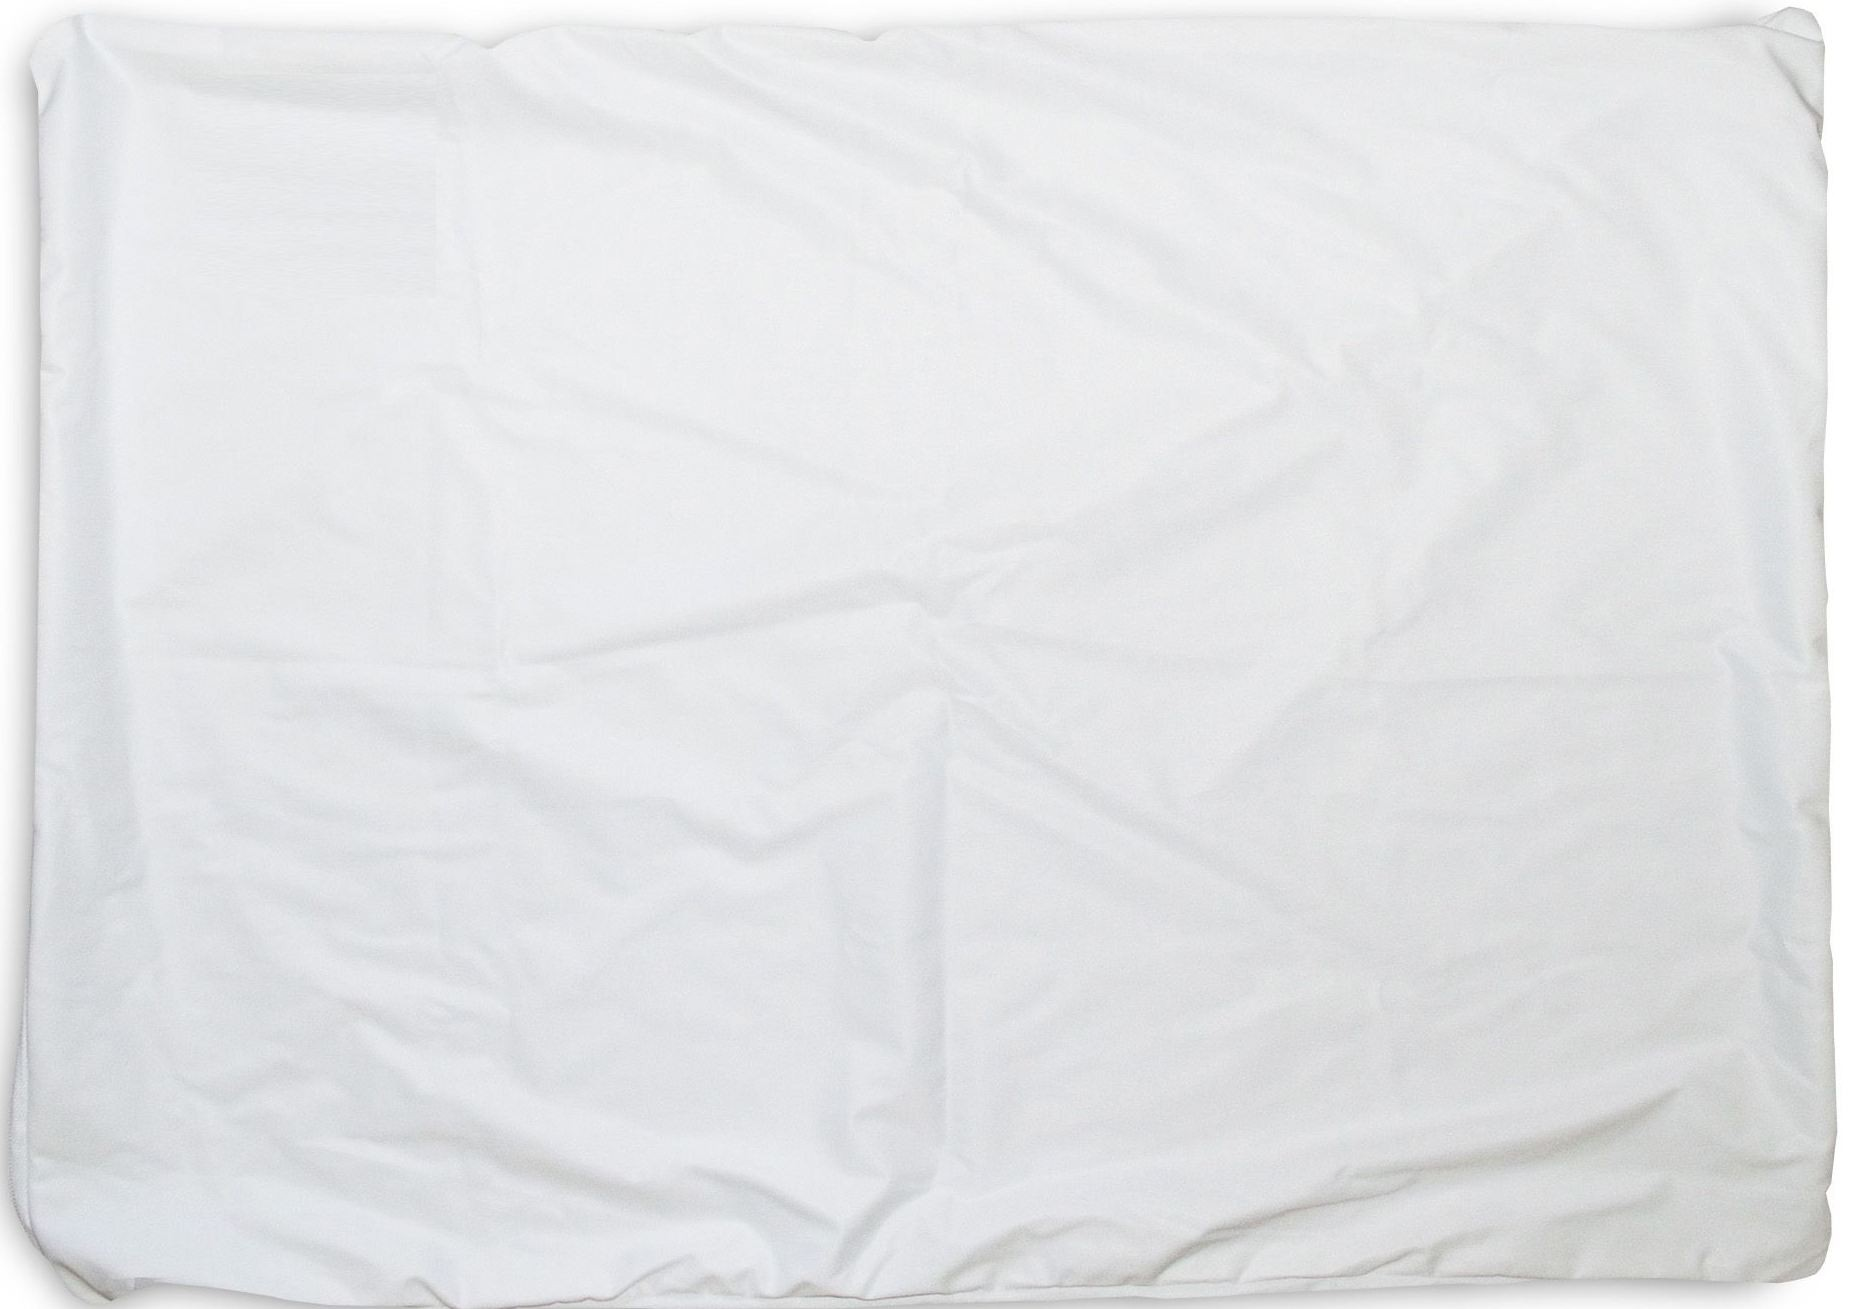 Invisicase white king cal king pillow encasement qd0200 for California king pillows